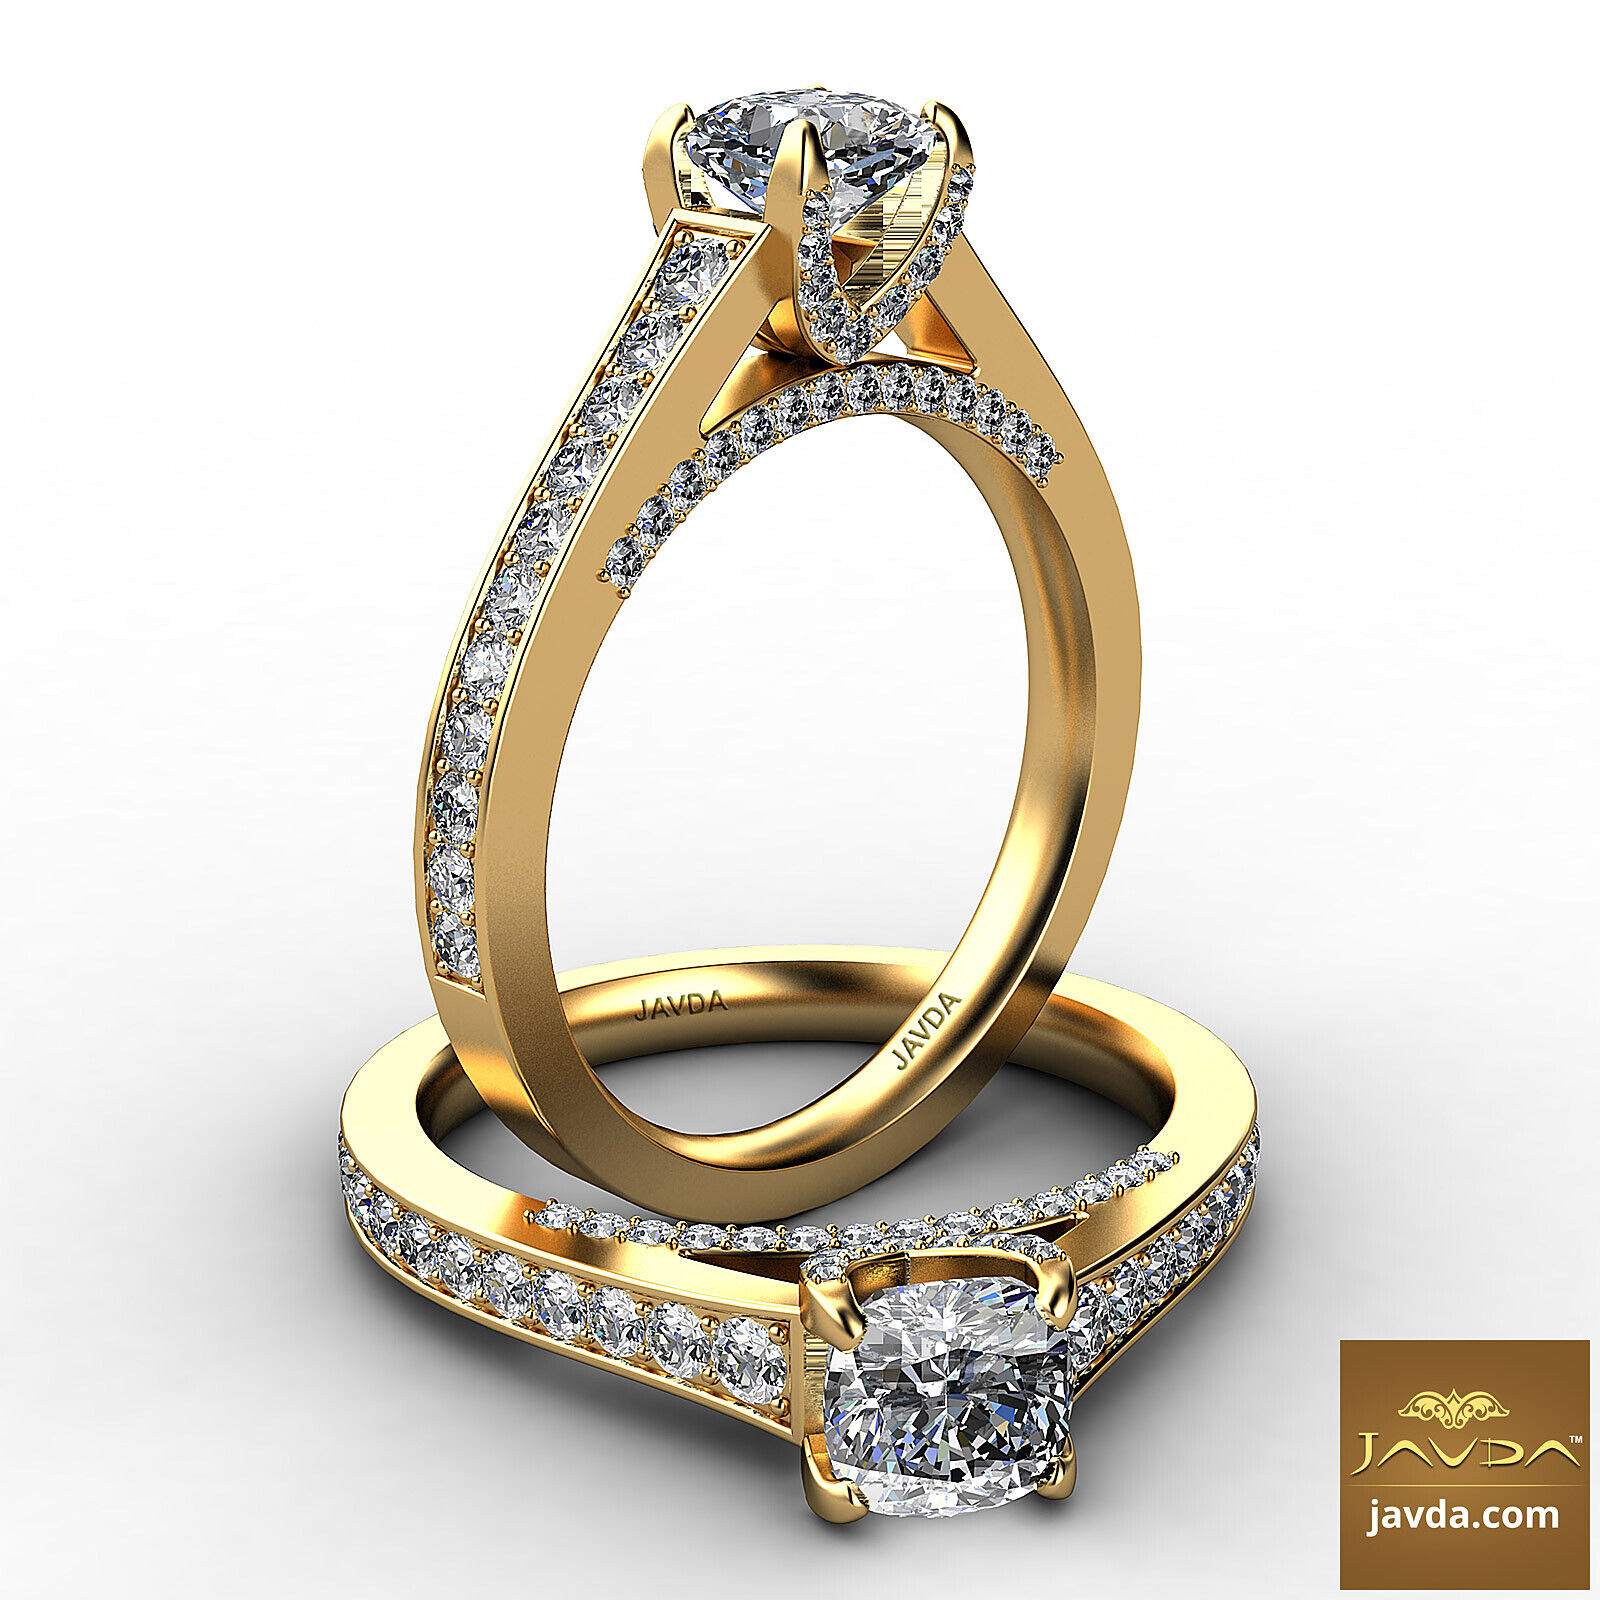 Cathedral Pave Cushion Natural Diamond Engagement Ring GIA H VS1 Clarity 1.25Ct